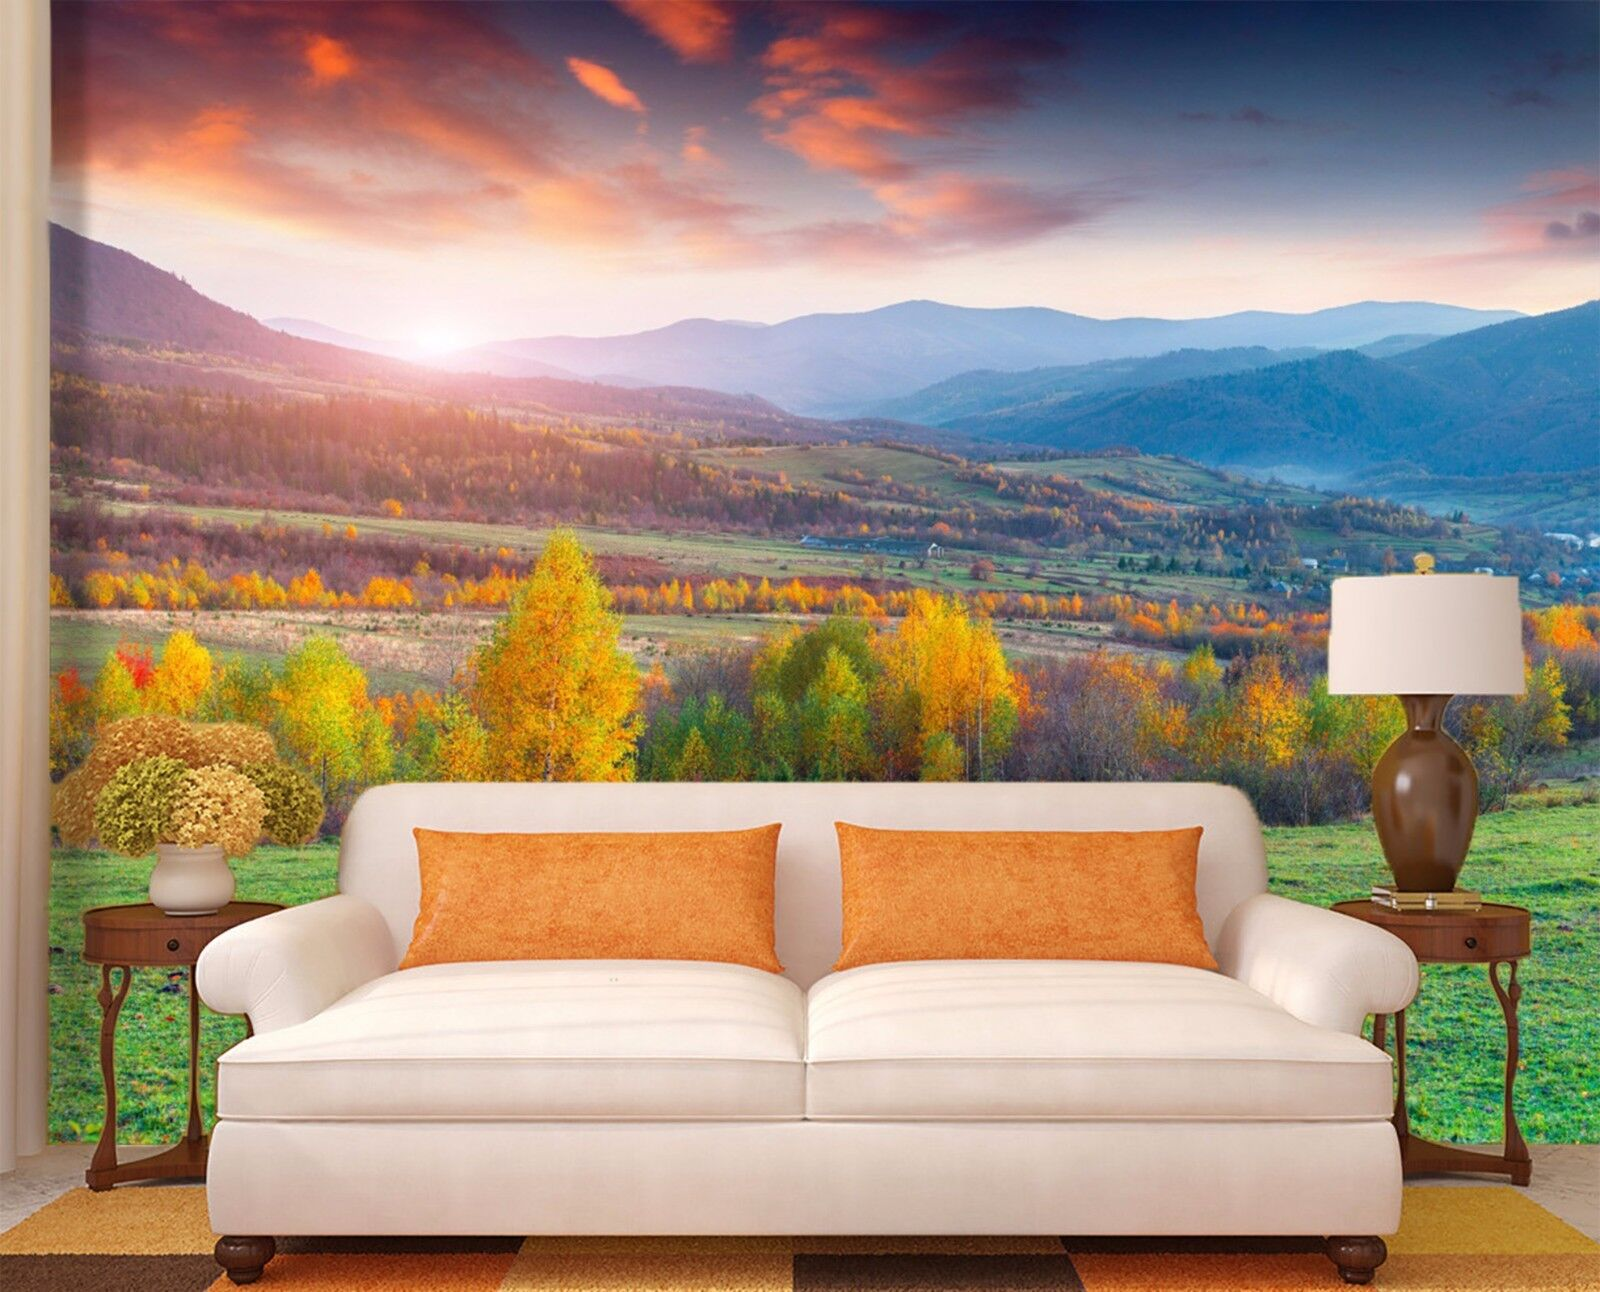 3D Gorgeous sky 2566 Wall Paper Wall Print Decal Wall Deco Indoor Wall Murals